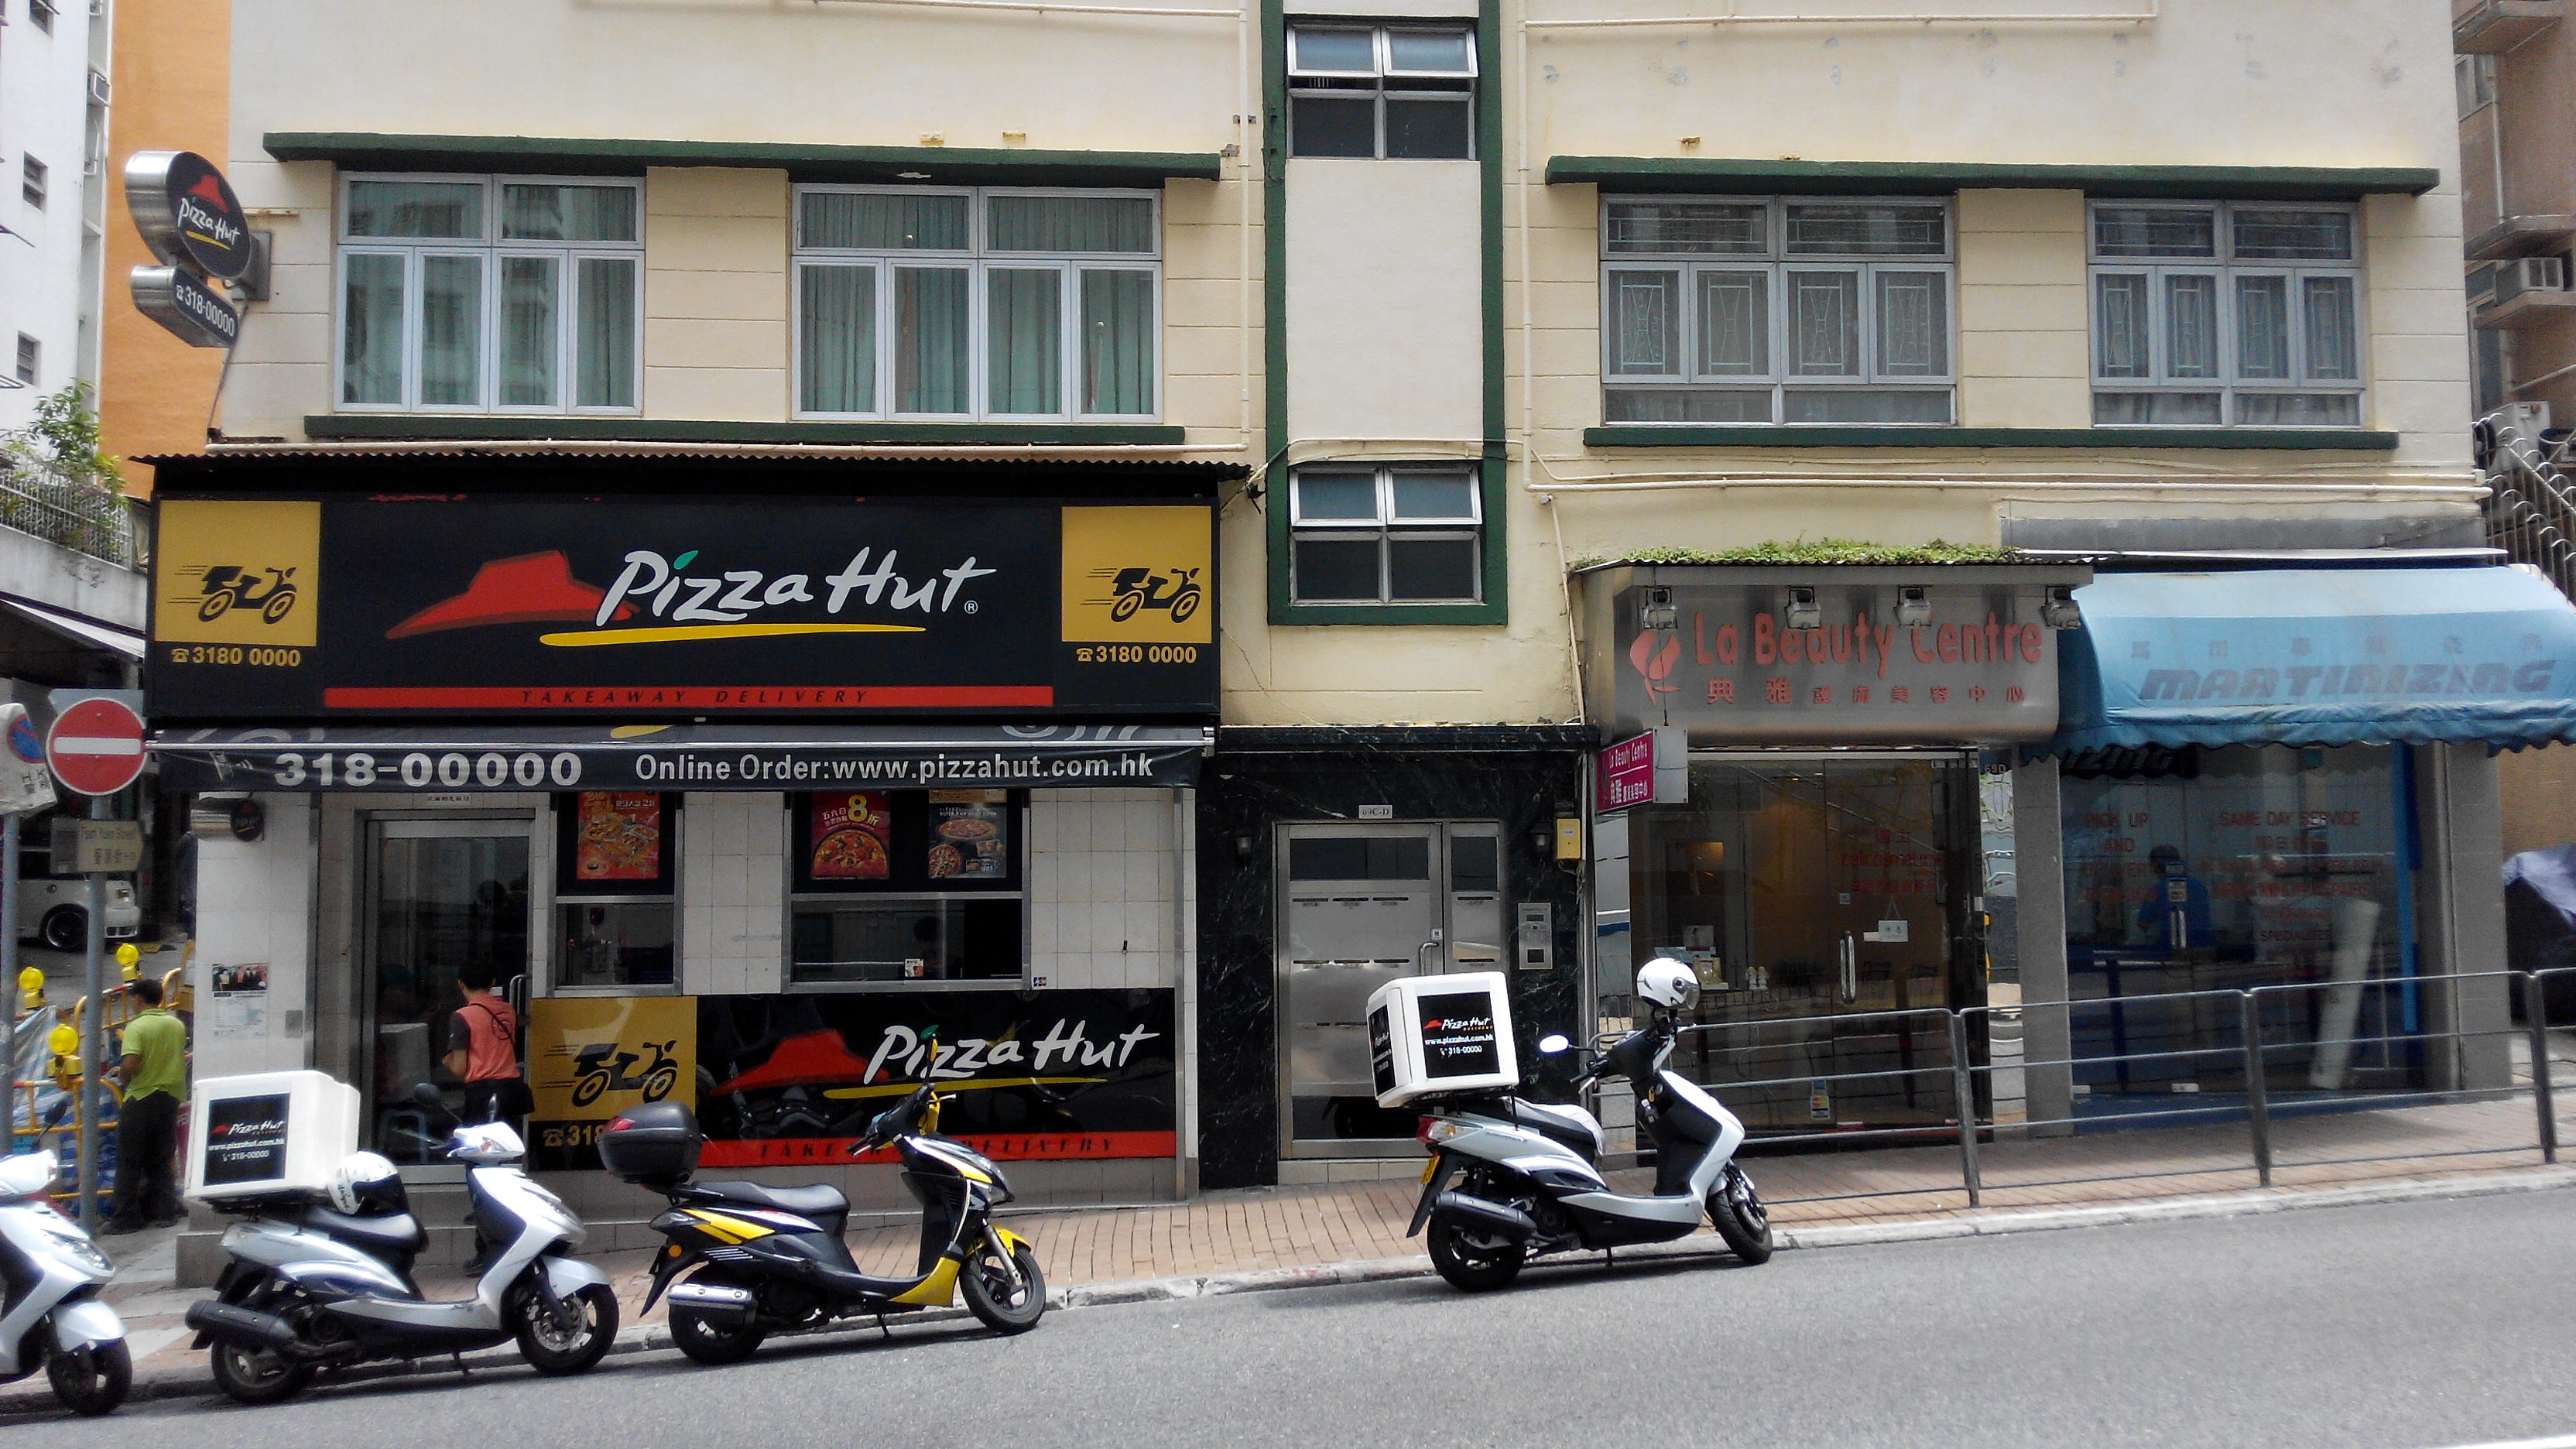 Pizza Hut Kitchen file:hk happy valley 跑馬地 sing woo road 69 成和道 pizza hut